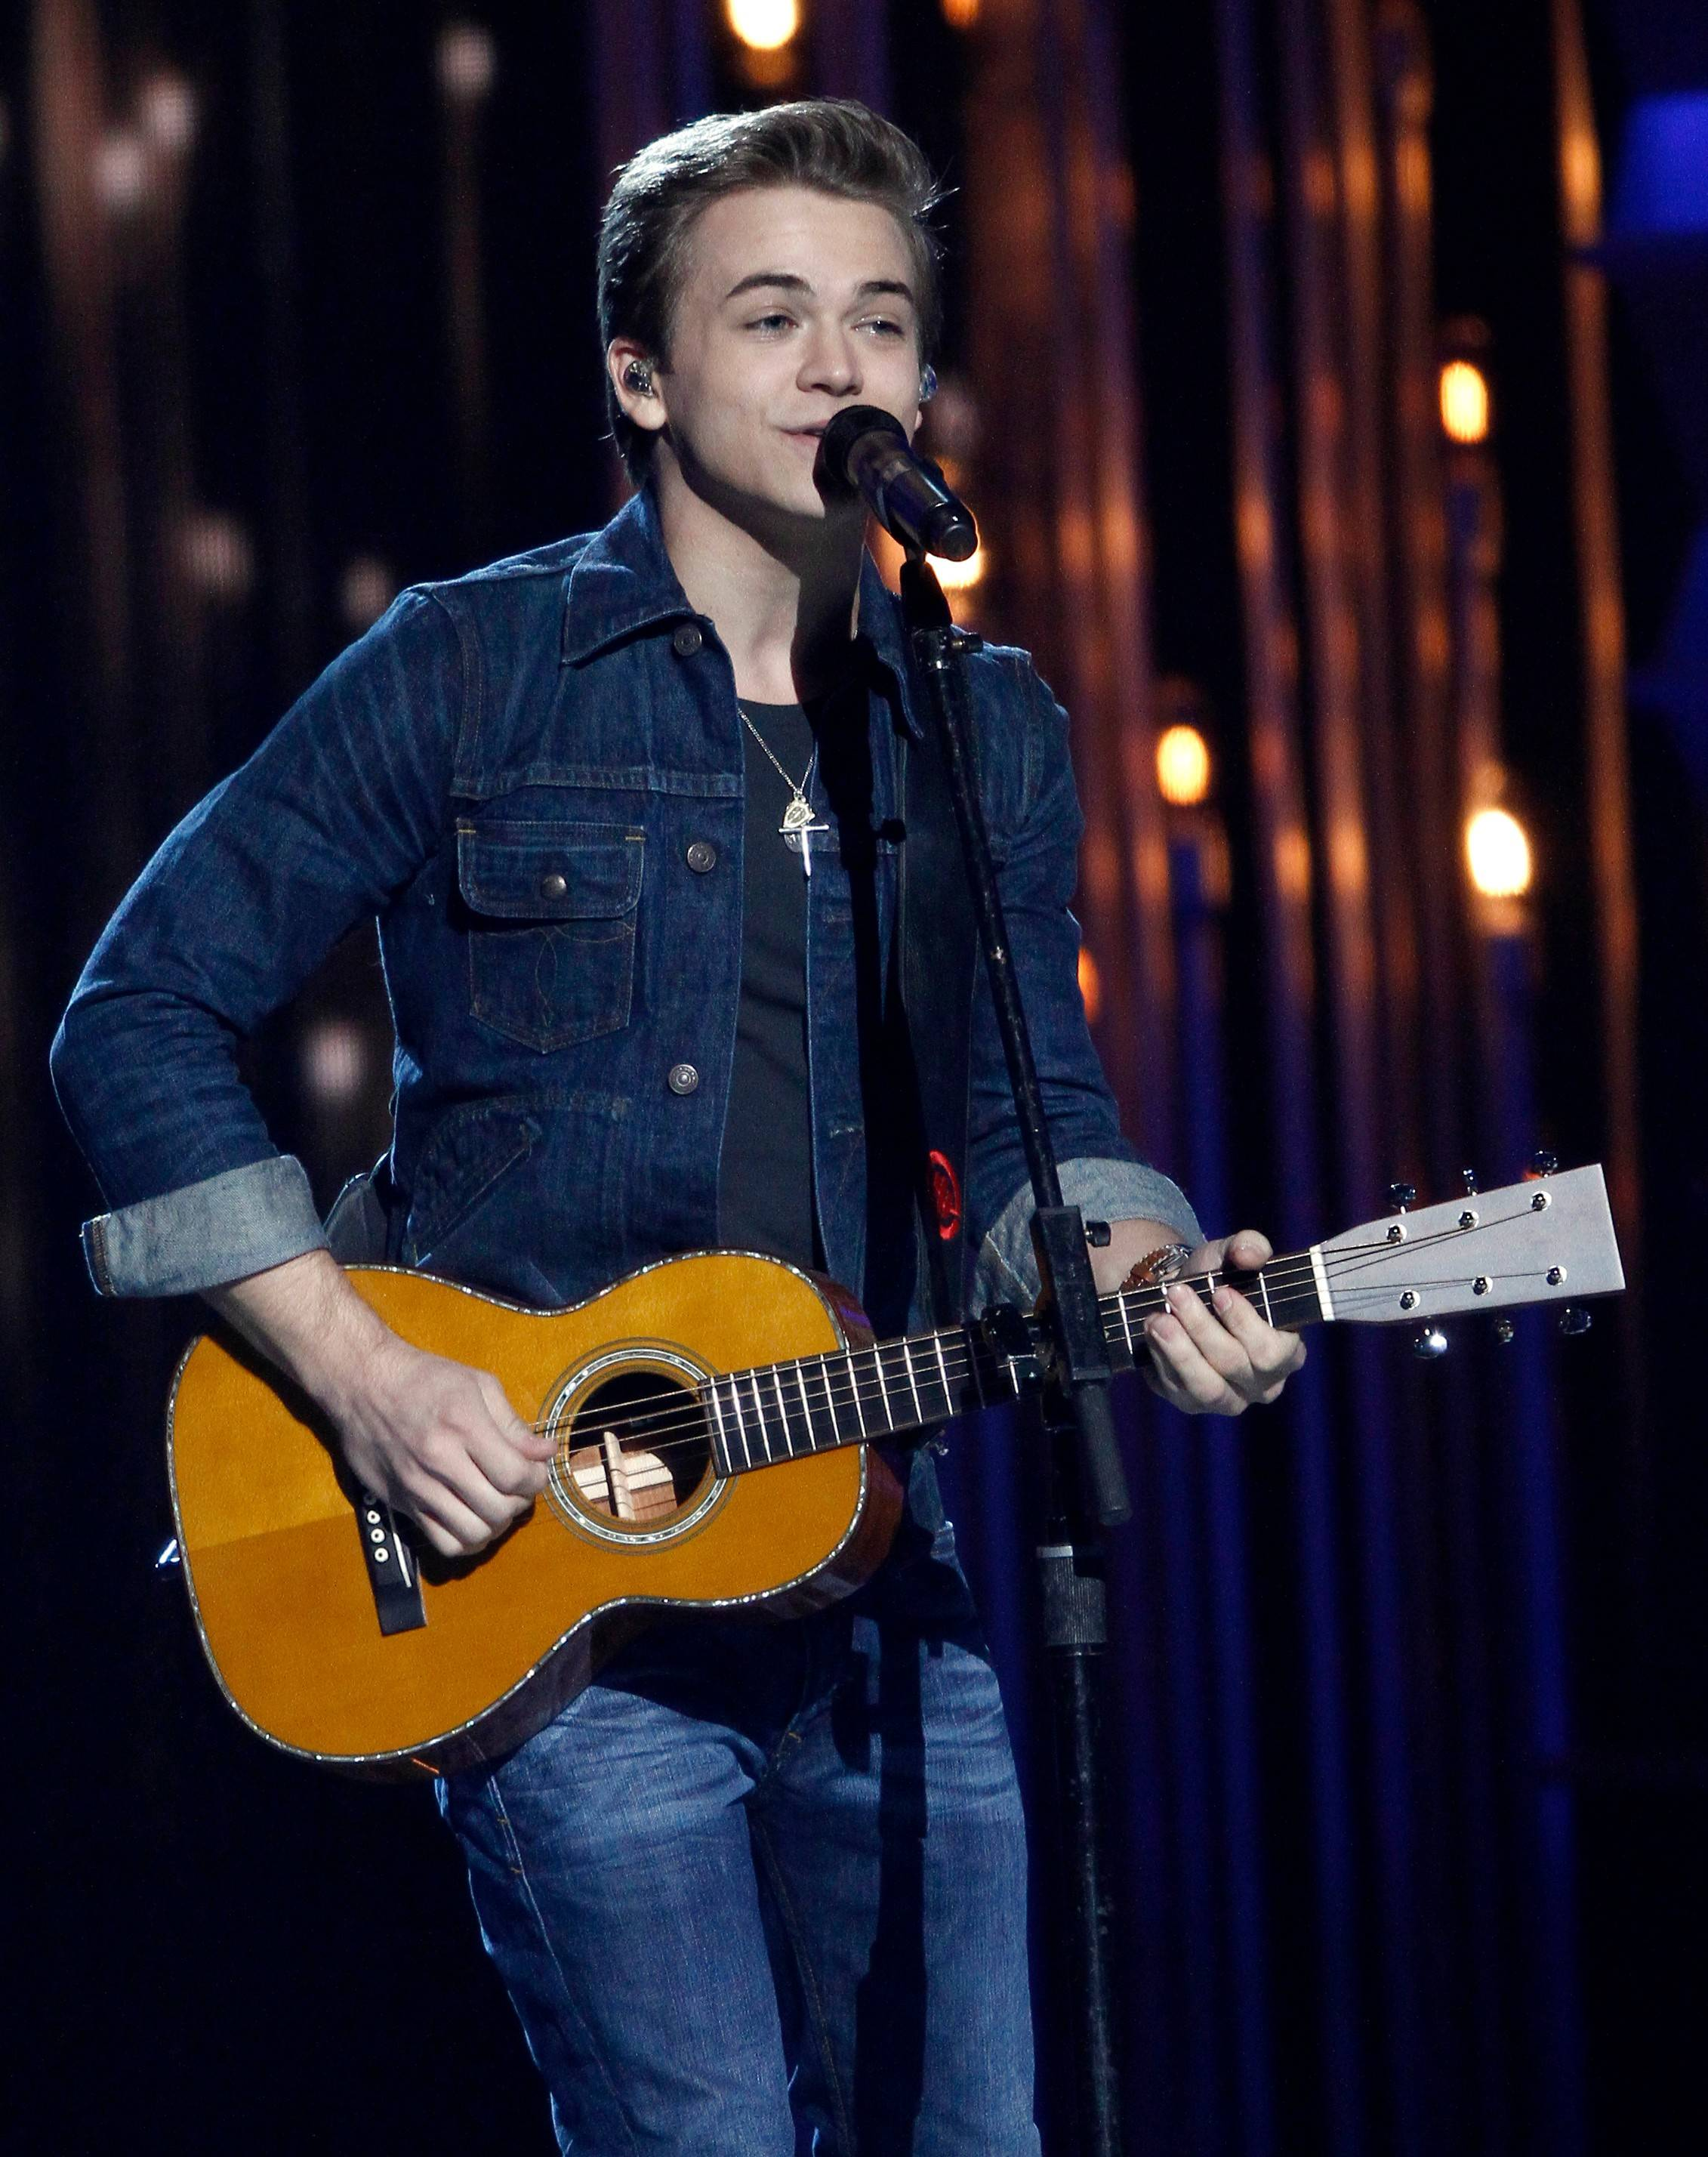 Country artist Hunter Hayes brings his Tattoo (Your Name) Tour to the Sears Centre Arena in Hoffman Estates on Friday, Nov. 21.